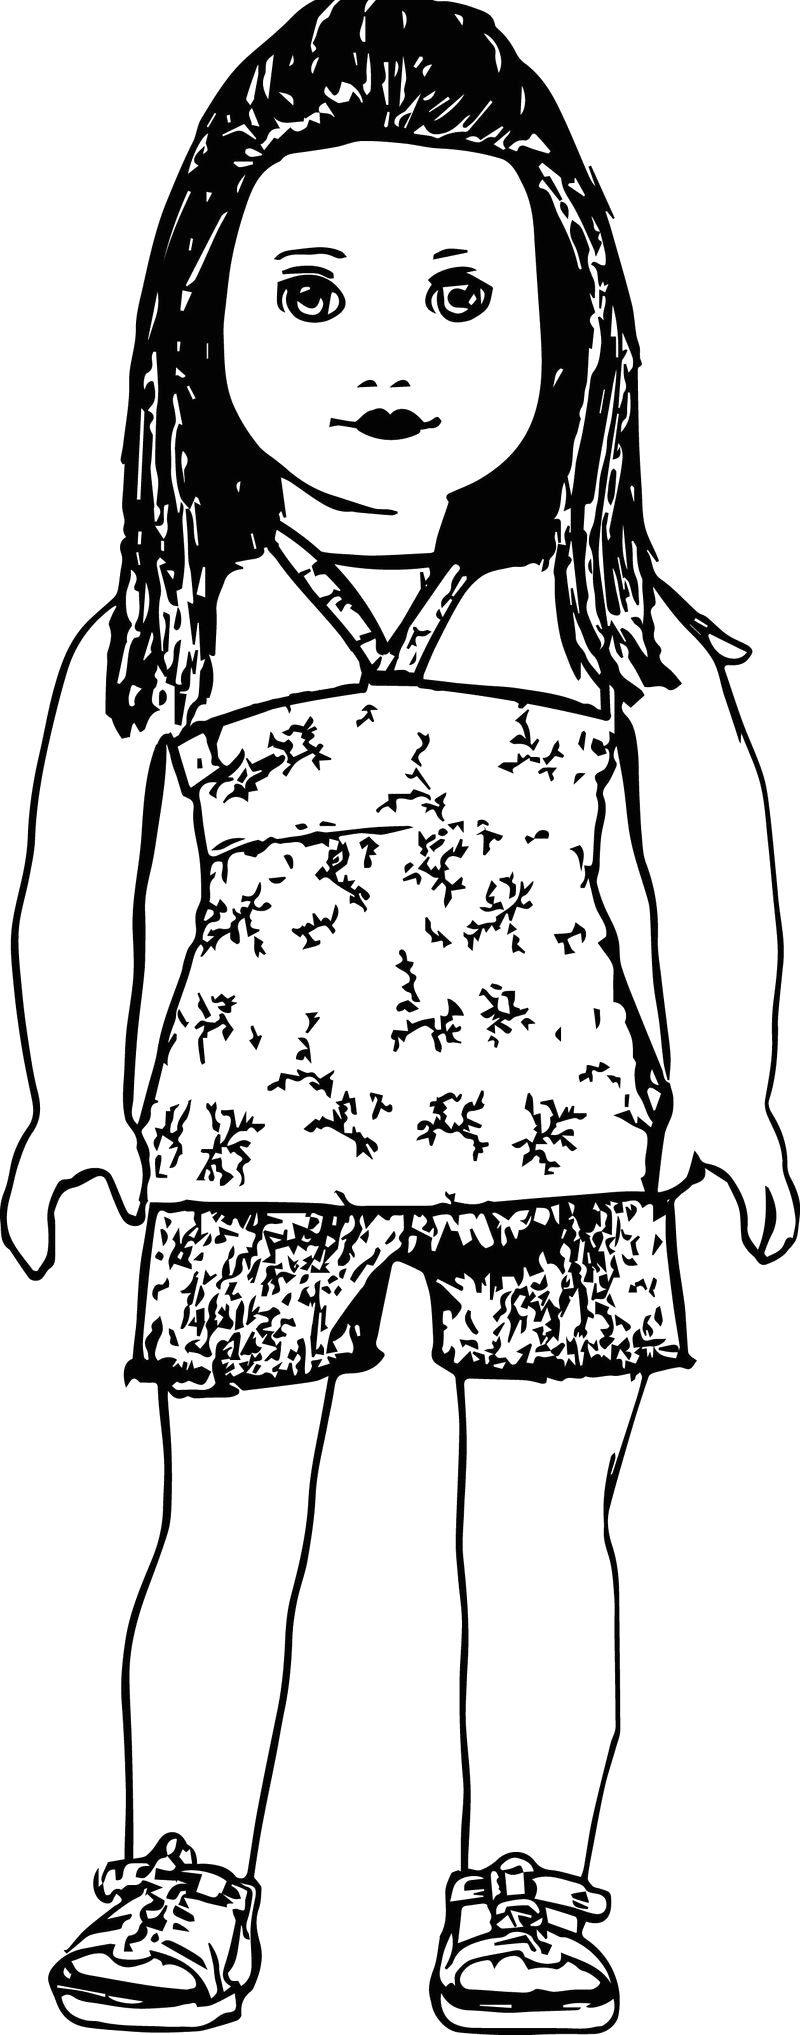 Free Coloring Pages Of American Girl Dolls Cute Ag American Girl Doll Coloring Pages Coloring Sheets